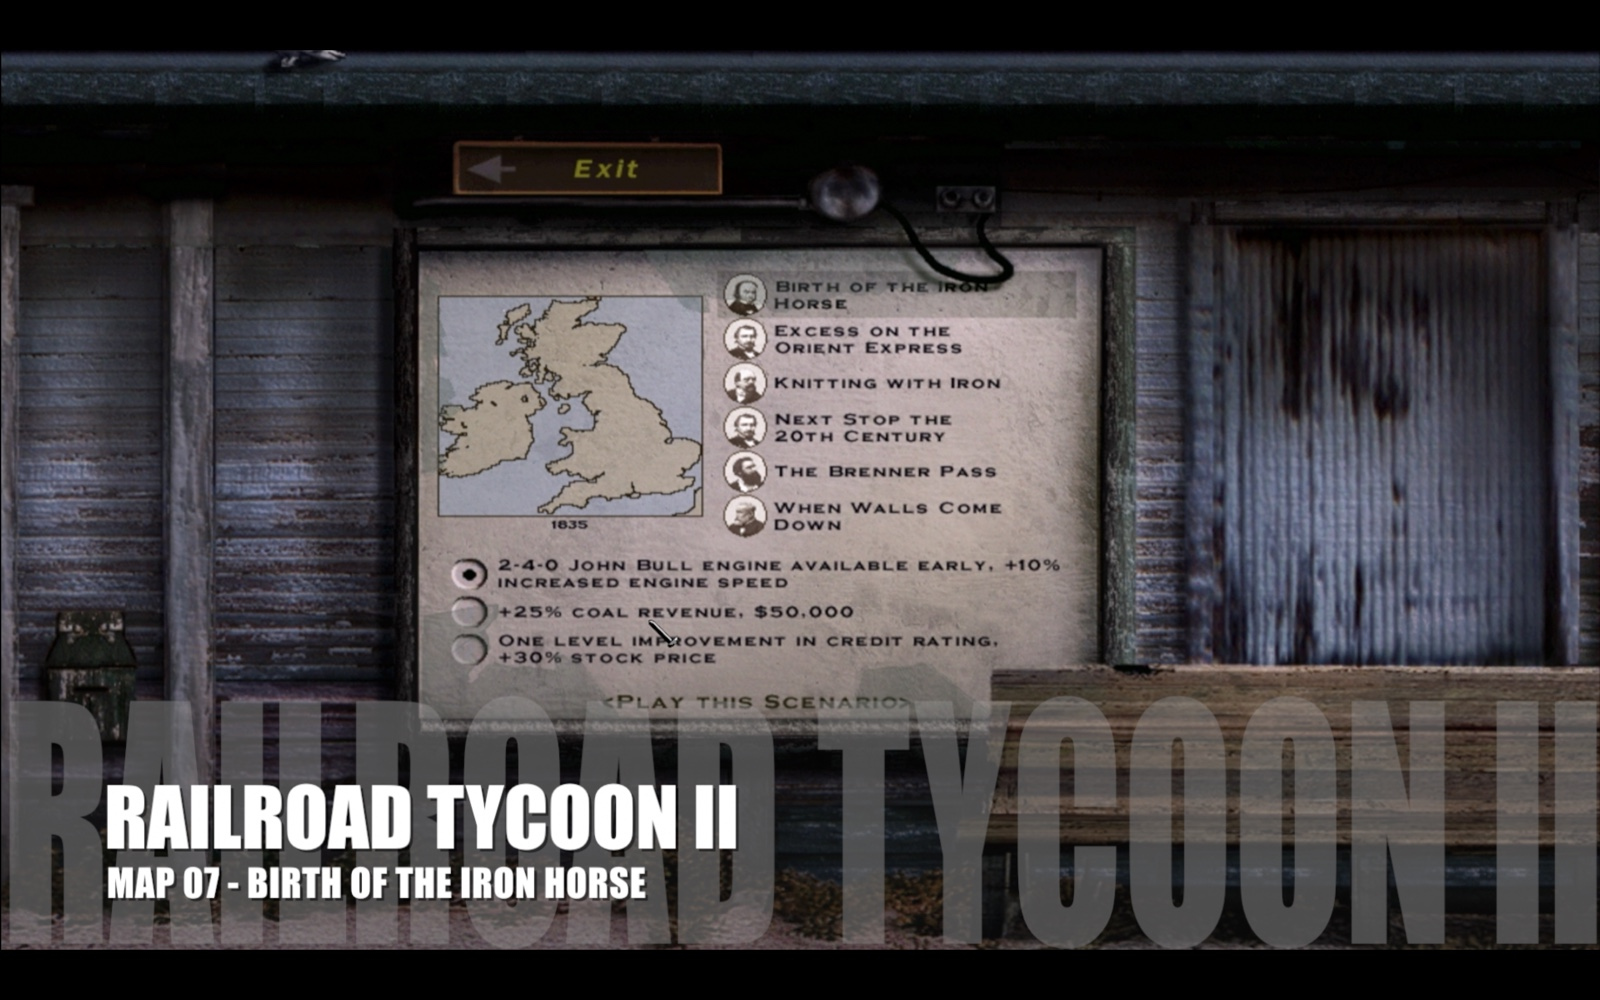 Railroad Tycoon II – Map 07 – Birth of the Iron Horse